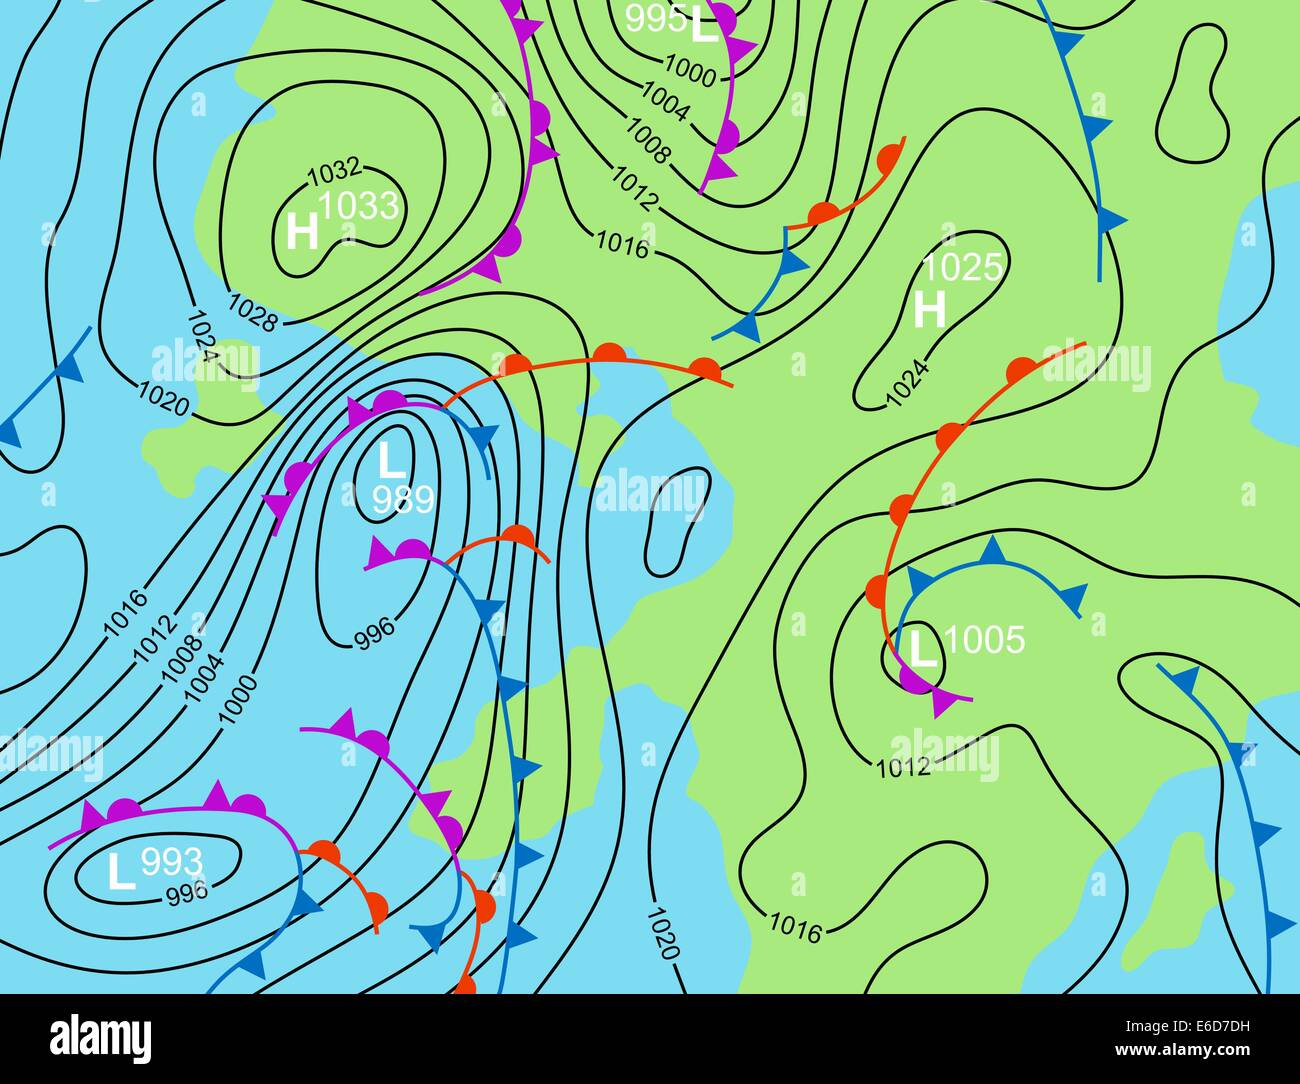 Editable vector illustration of a generic weather system map - Stock Image